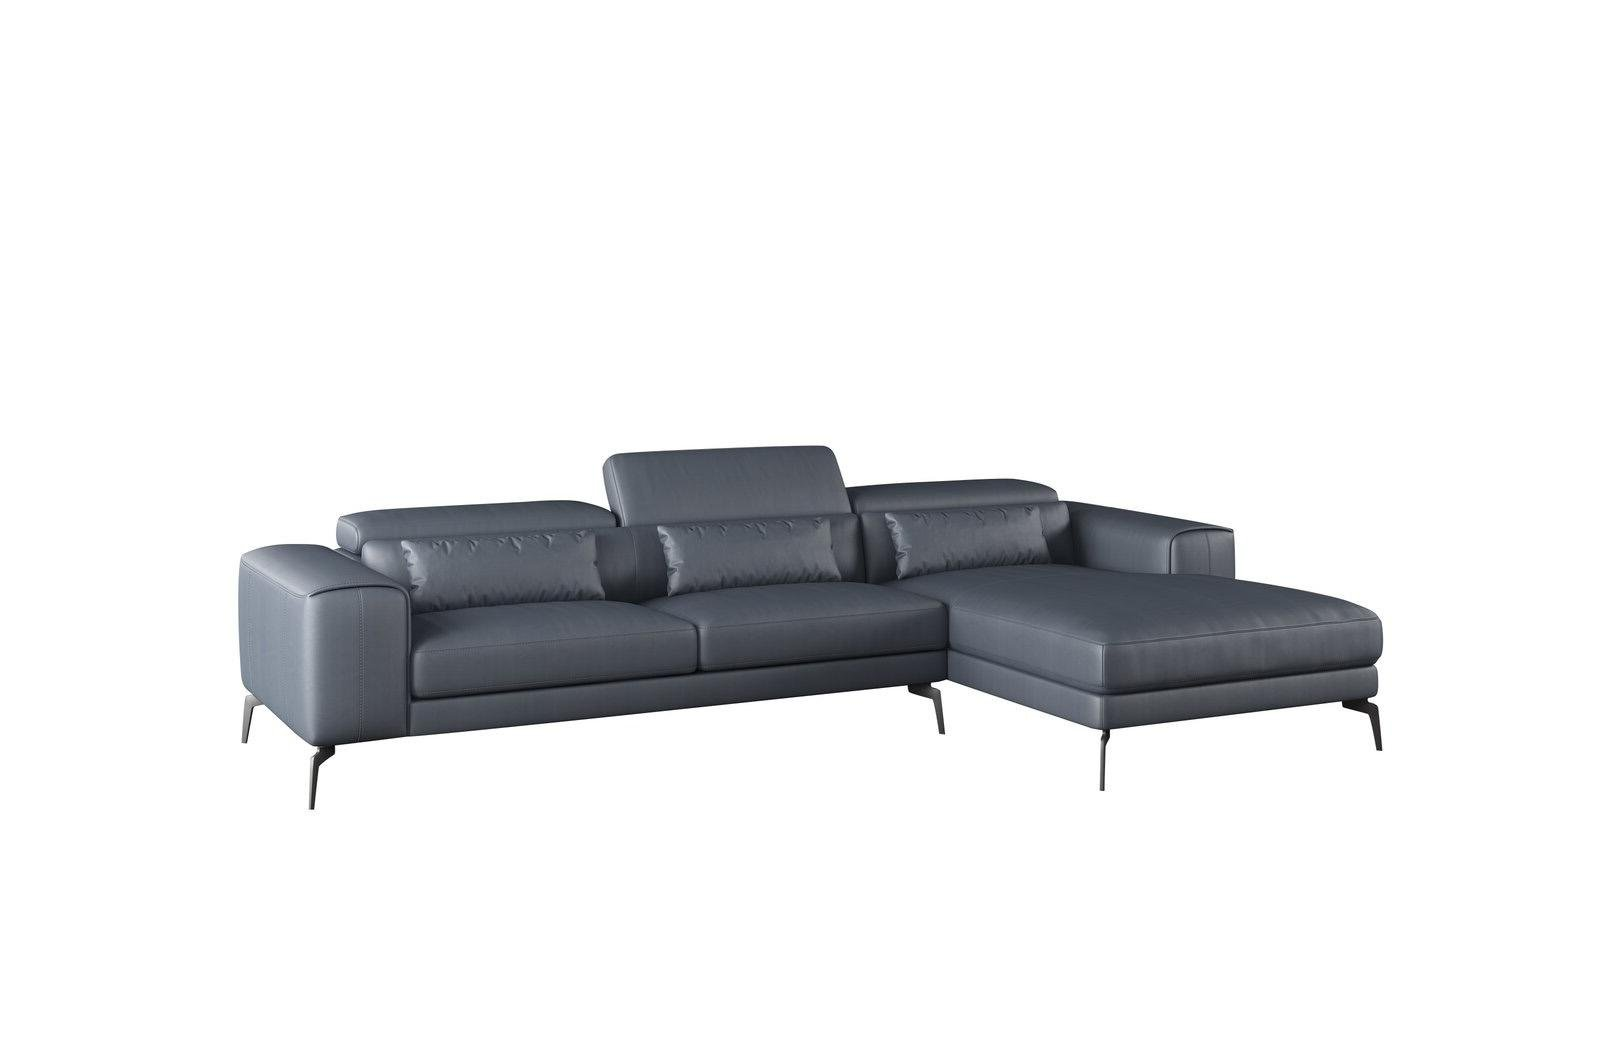 Contemporary, Modern Gray, Smoke Leather and Wood, Solid Hardwood Sectional Sofa RHC CAVOUR by European Furniture